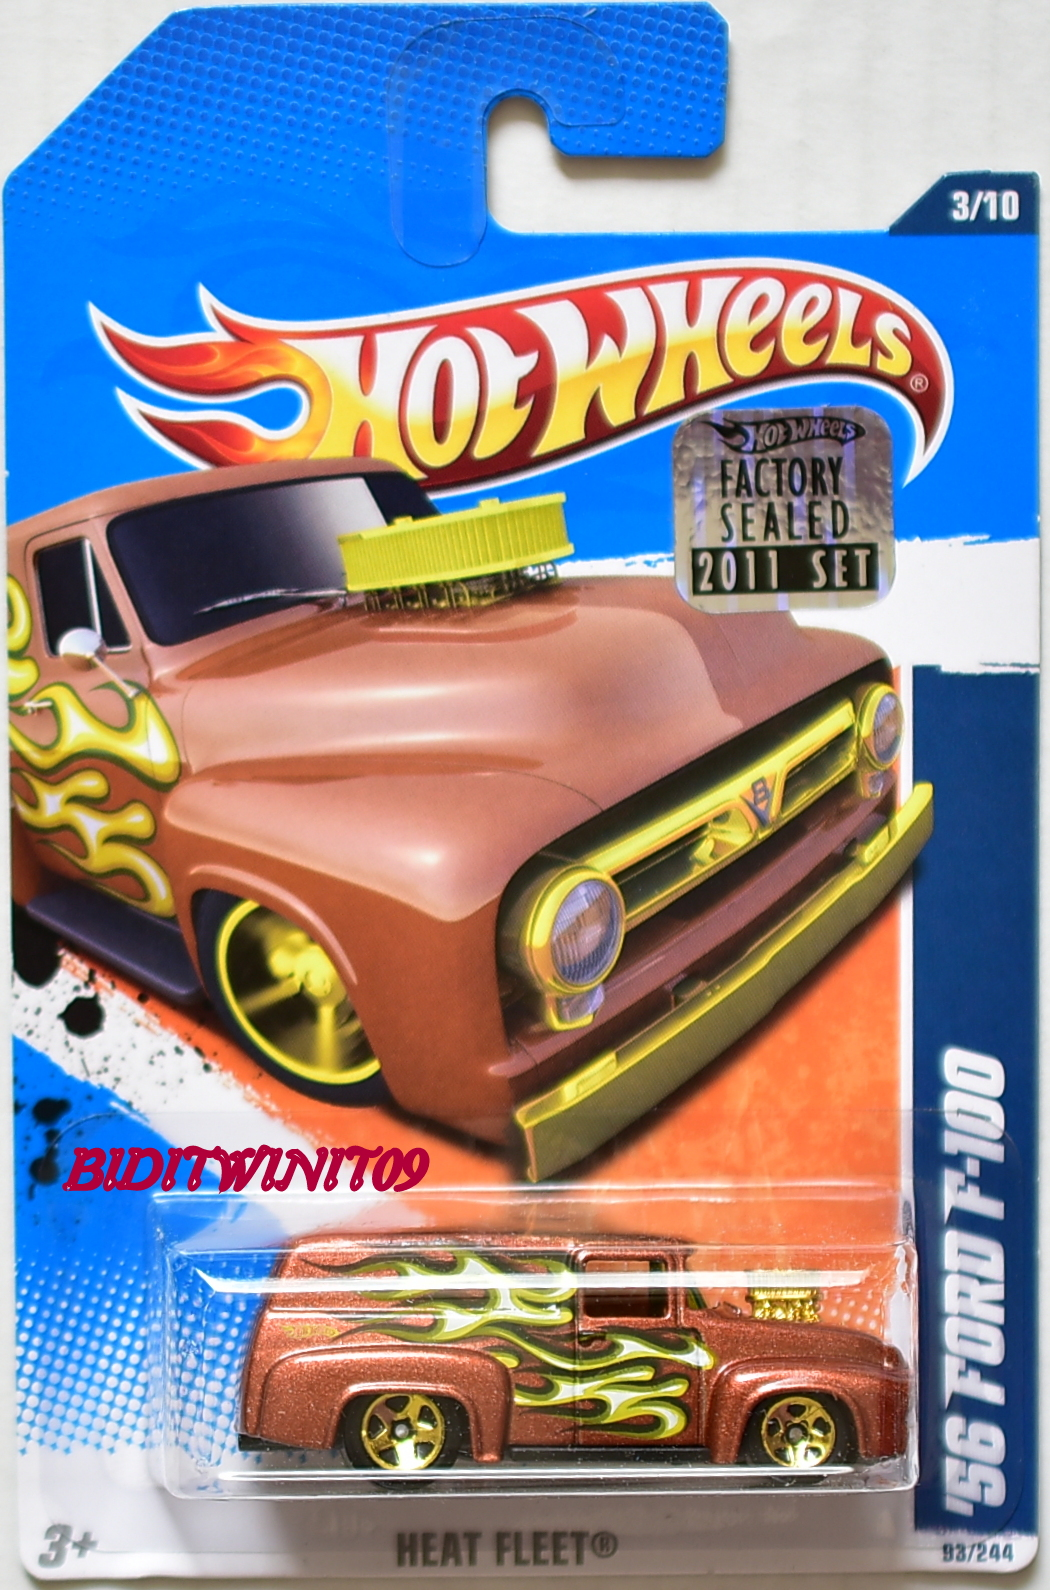 HOT WHEELS 2011 HEAT FLEET '56 FORD F-100 #3/10 BROWN FACTORY SEALED